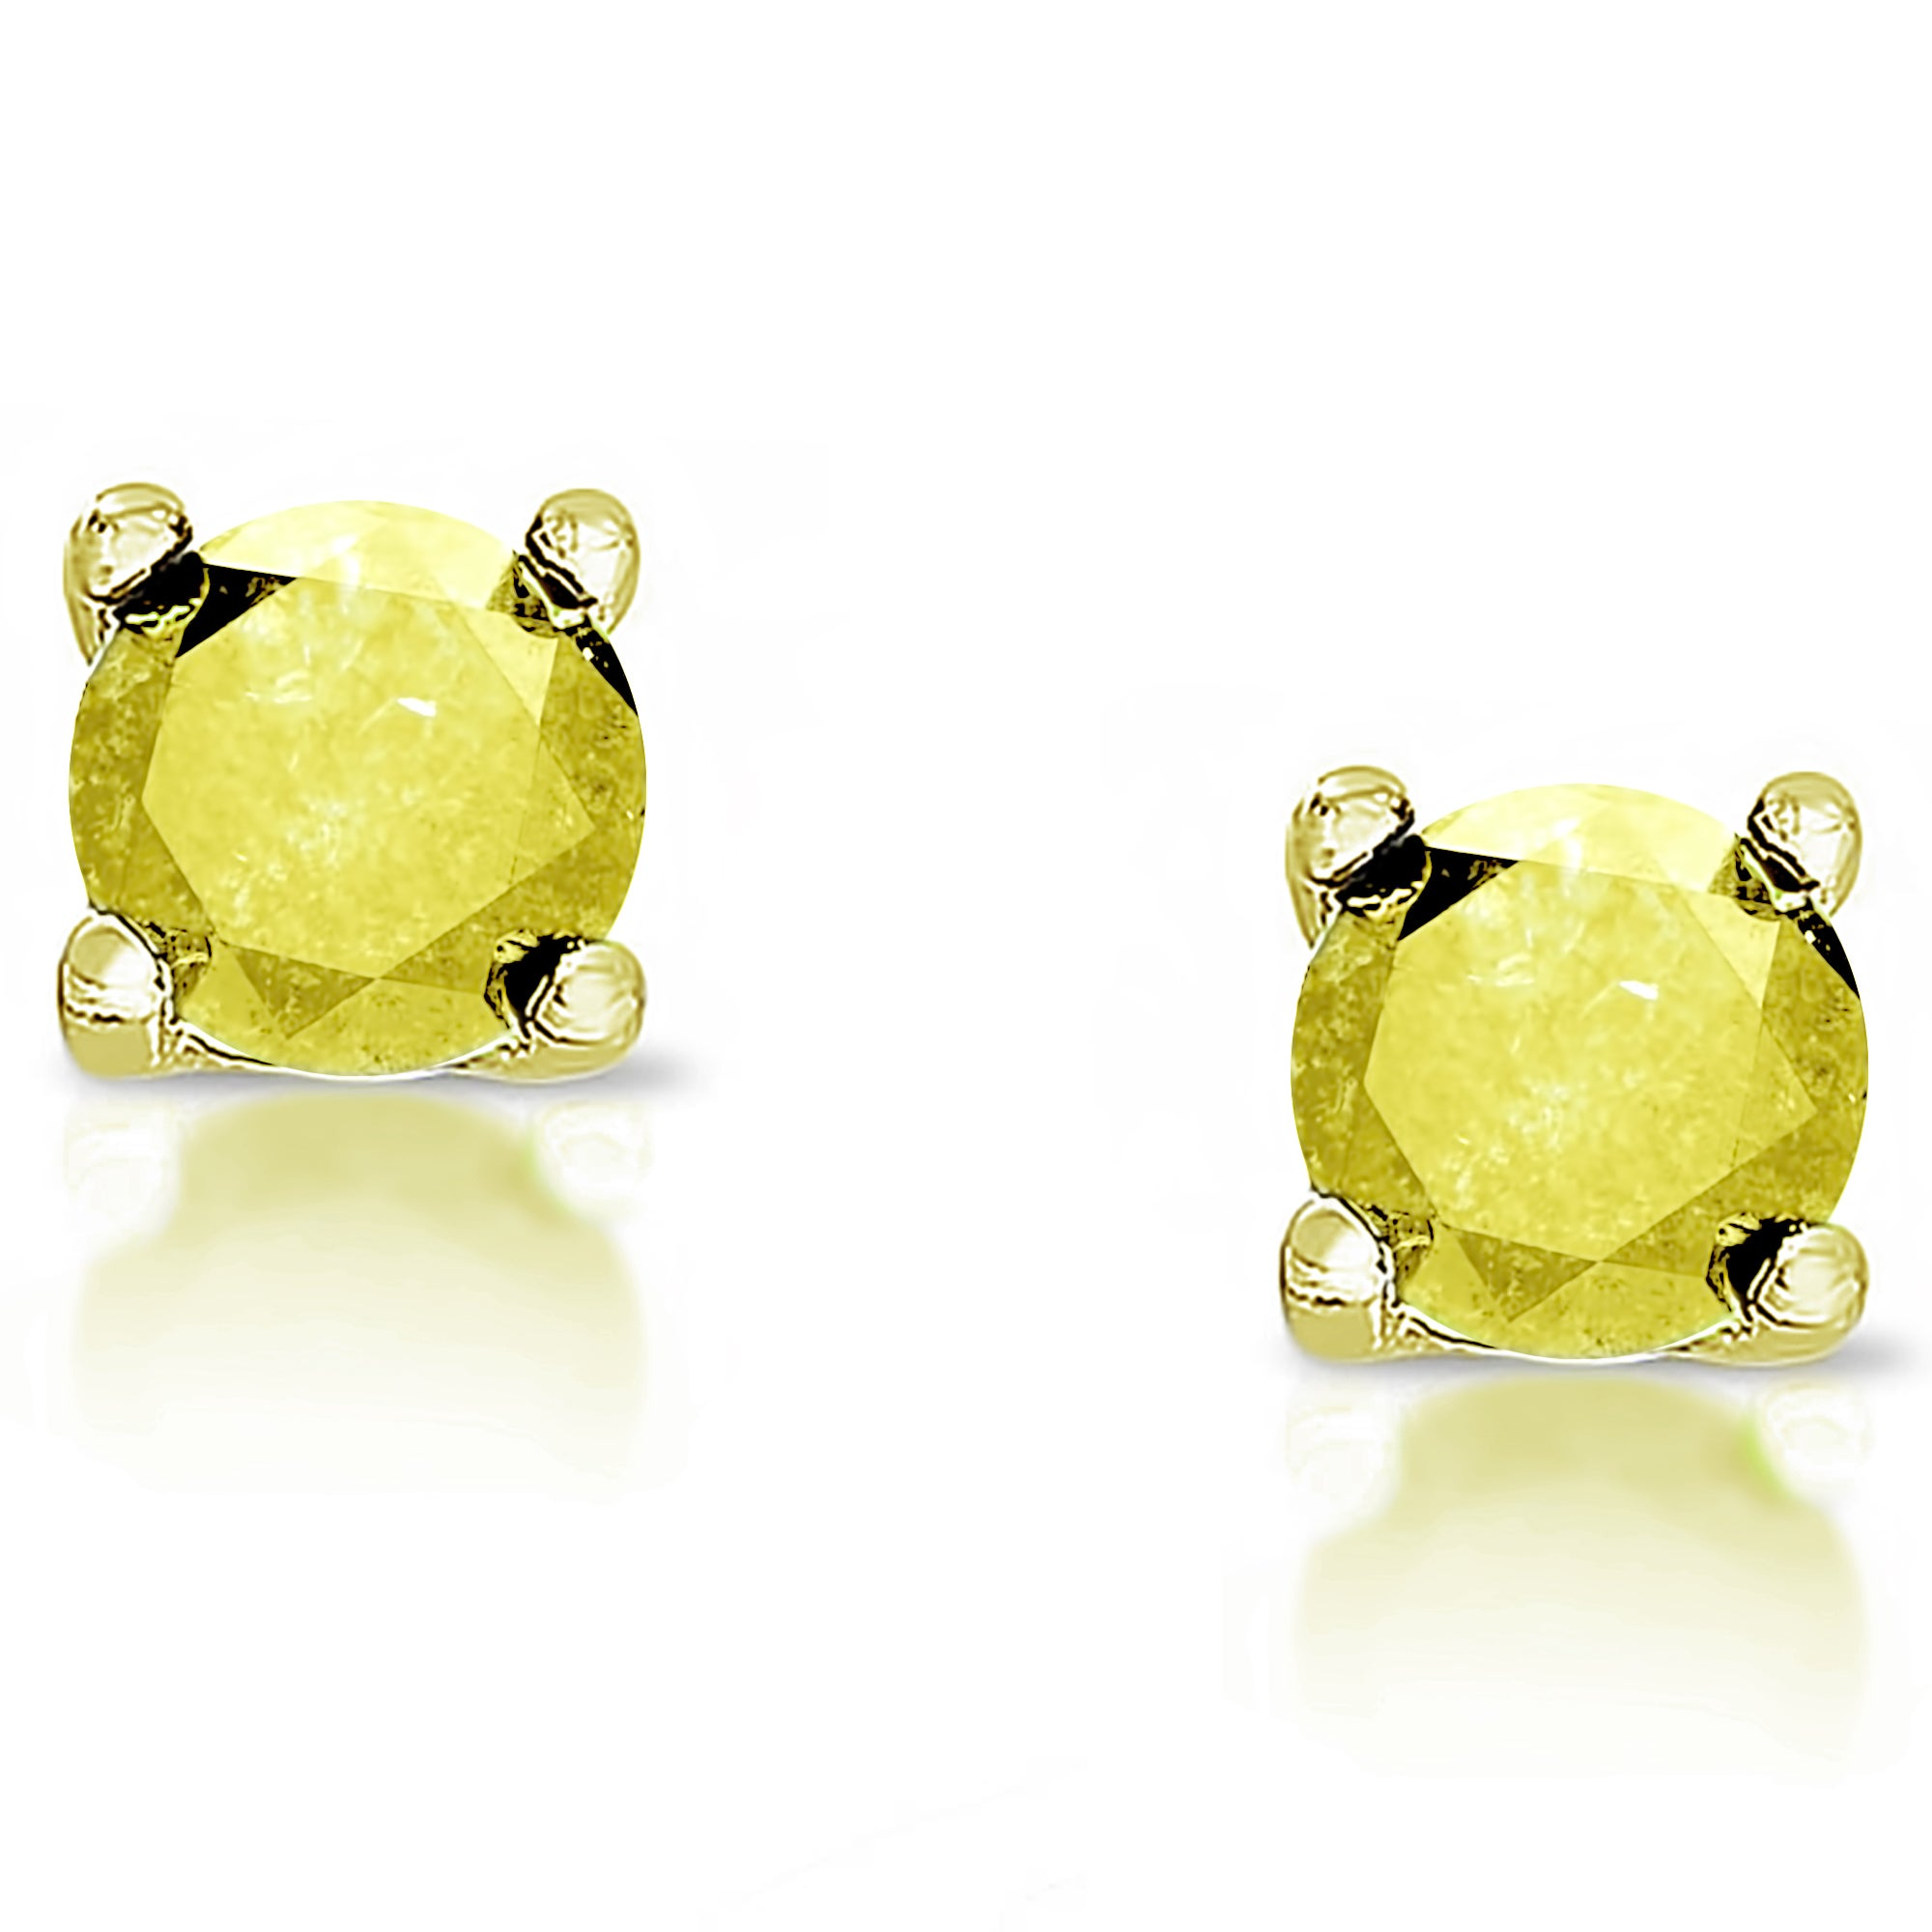 canary earrings pin diamond tonycollection pinterest